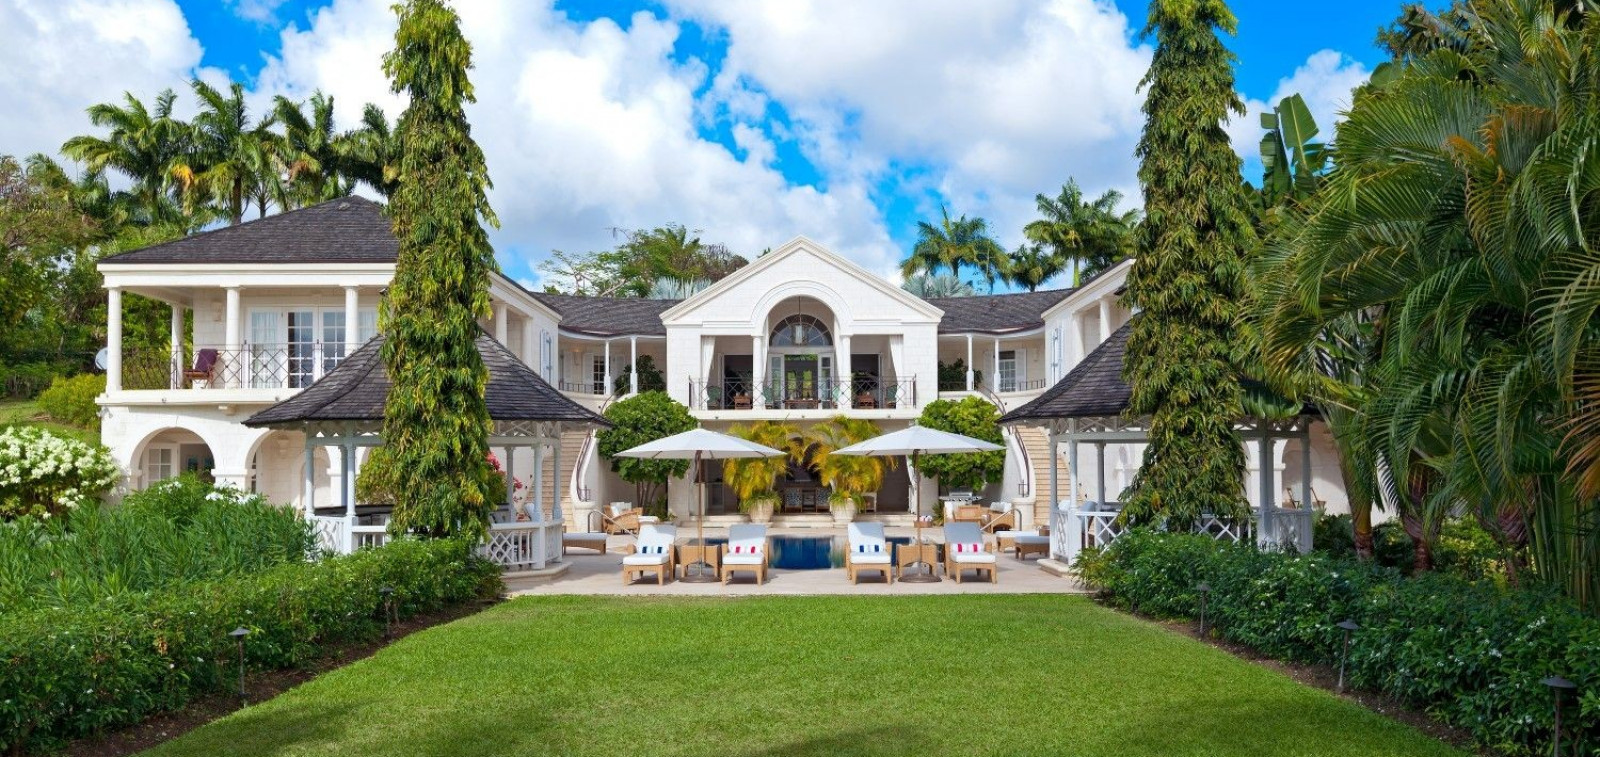 Luxury Gardens and Palm Trees 5 Bedroom Villa Sugar Hill, Barbados with Private Pool, Putting Green & Sea Views